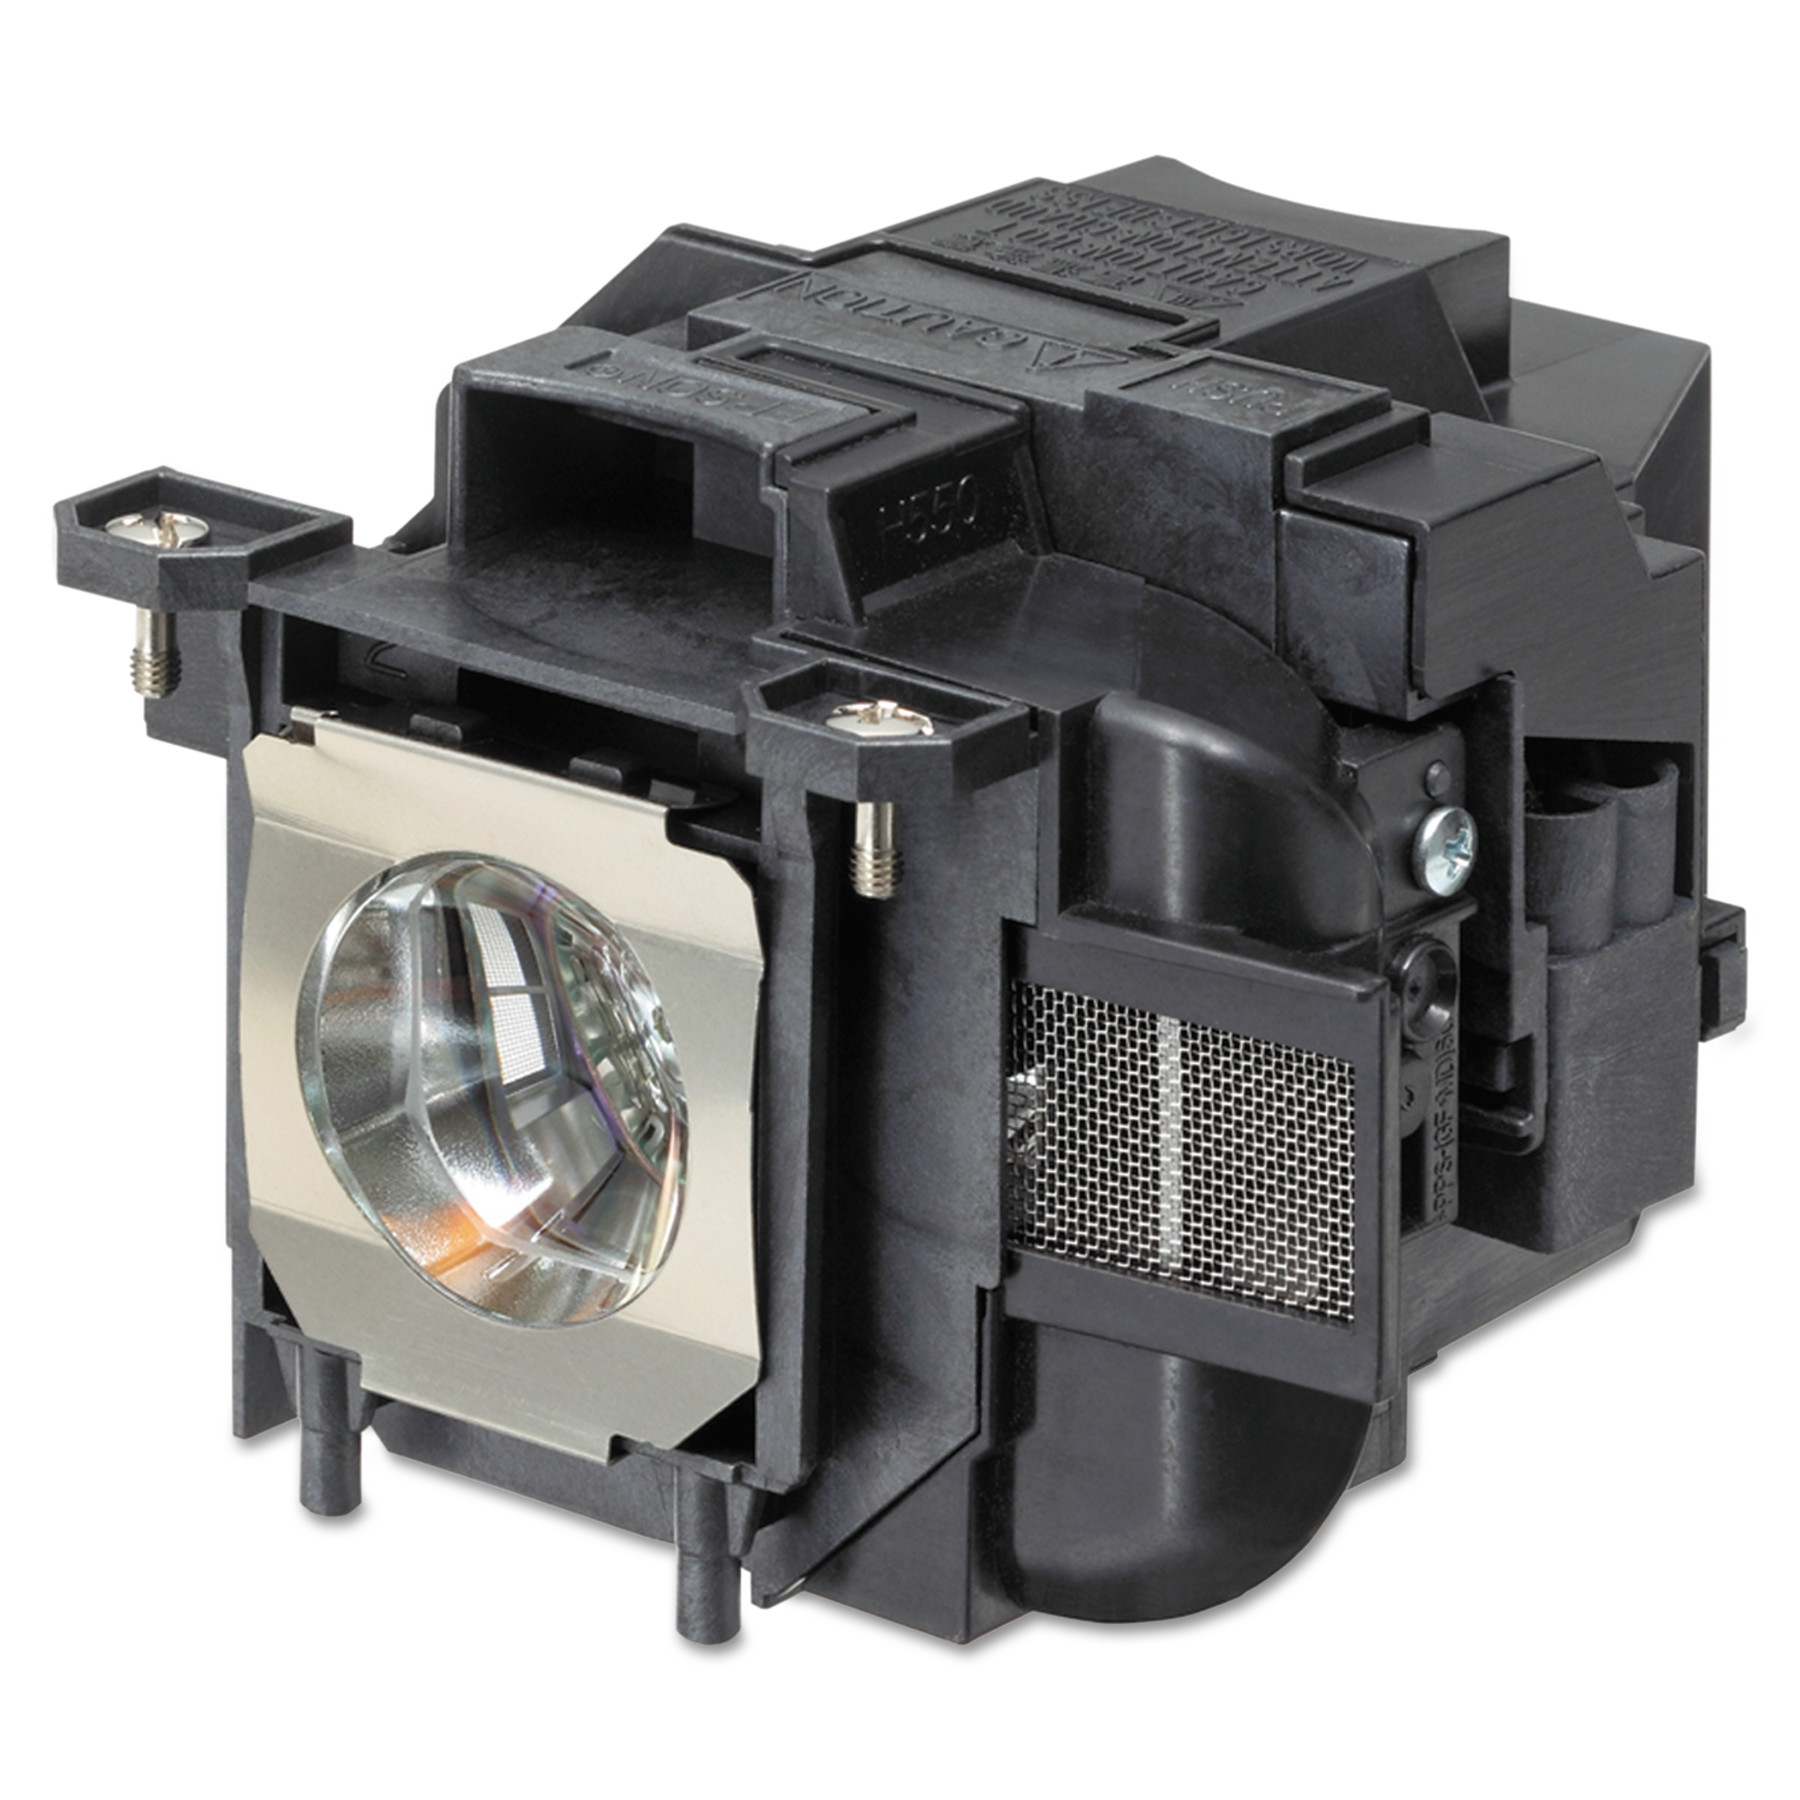 Epson ELPLP78 Projector Lamp for PowerLite 1222 1262W 98 99W 965 S17 W17 X17 by EPSON AMERICA, INC.